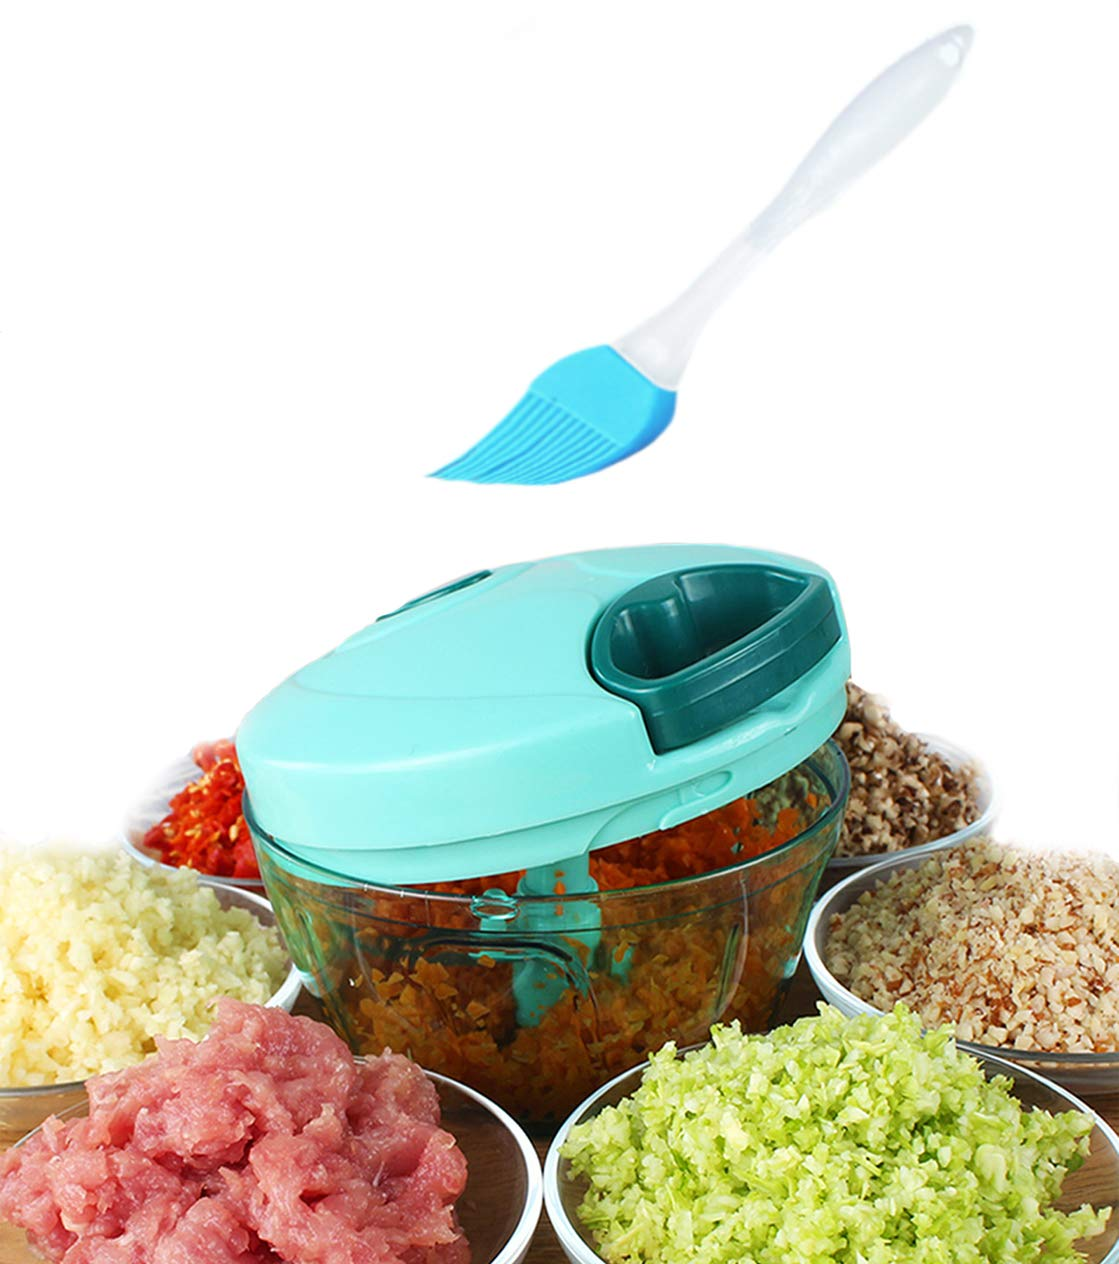 Tenta Kitchen 1.3-Cup/330ml Pull String Manual Food Processor/Vegetable Slicer/Chopper/Dicer/Mincer/Blender - To Chop Fruits,Vegetables,Nuts,Herbs,Onions,Garlic - With 8 Inch Premium Silicone Brush …